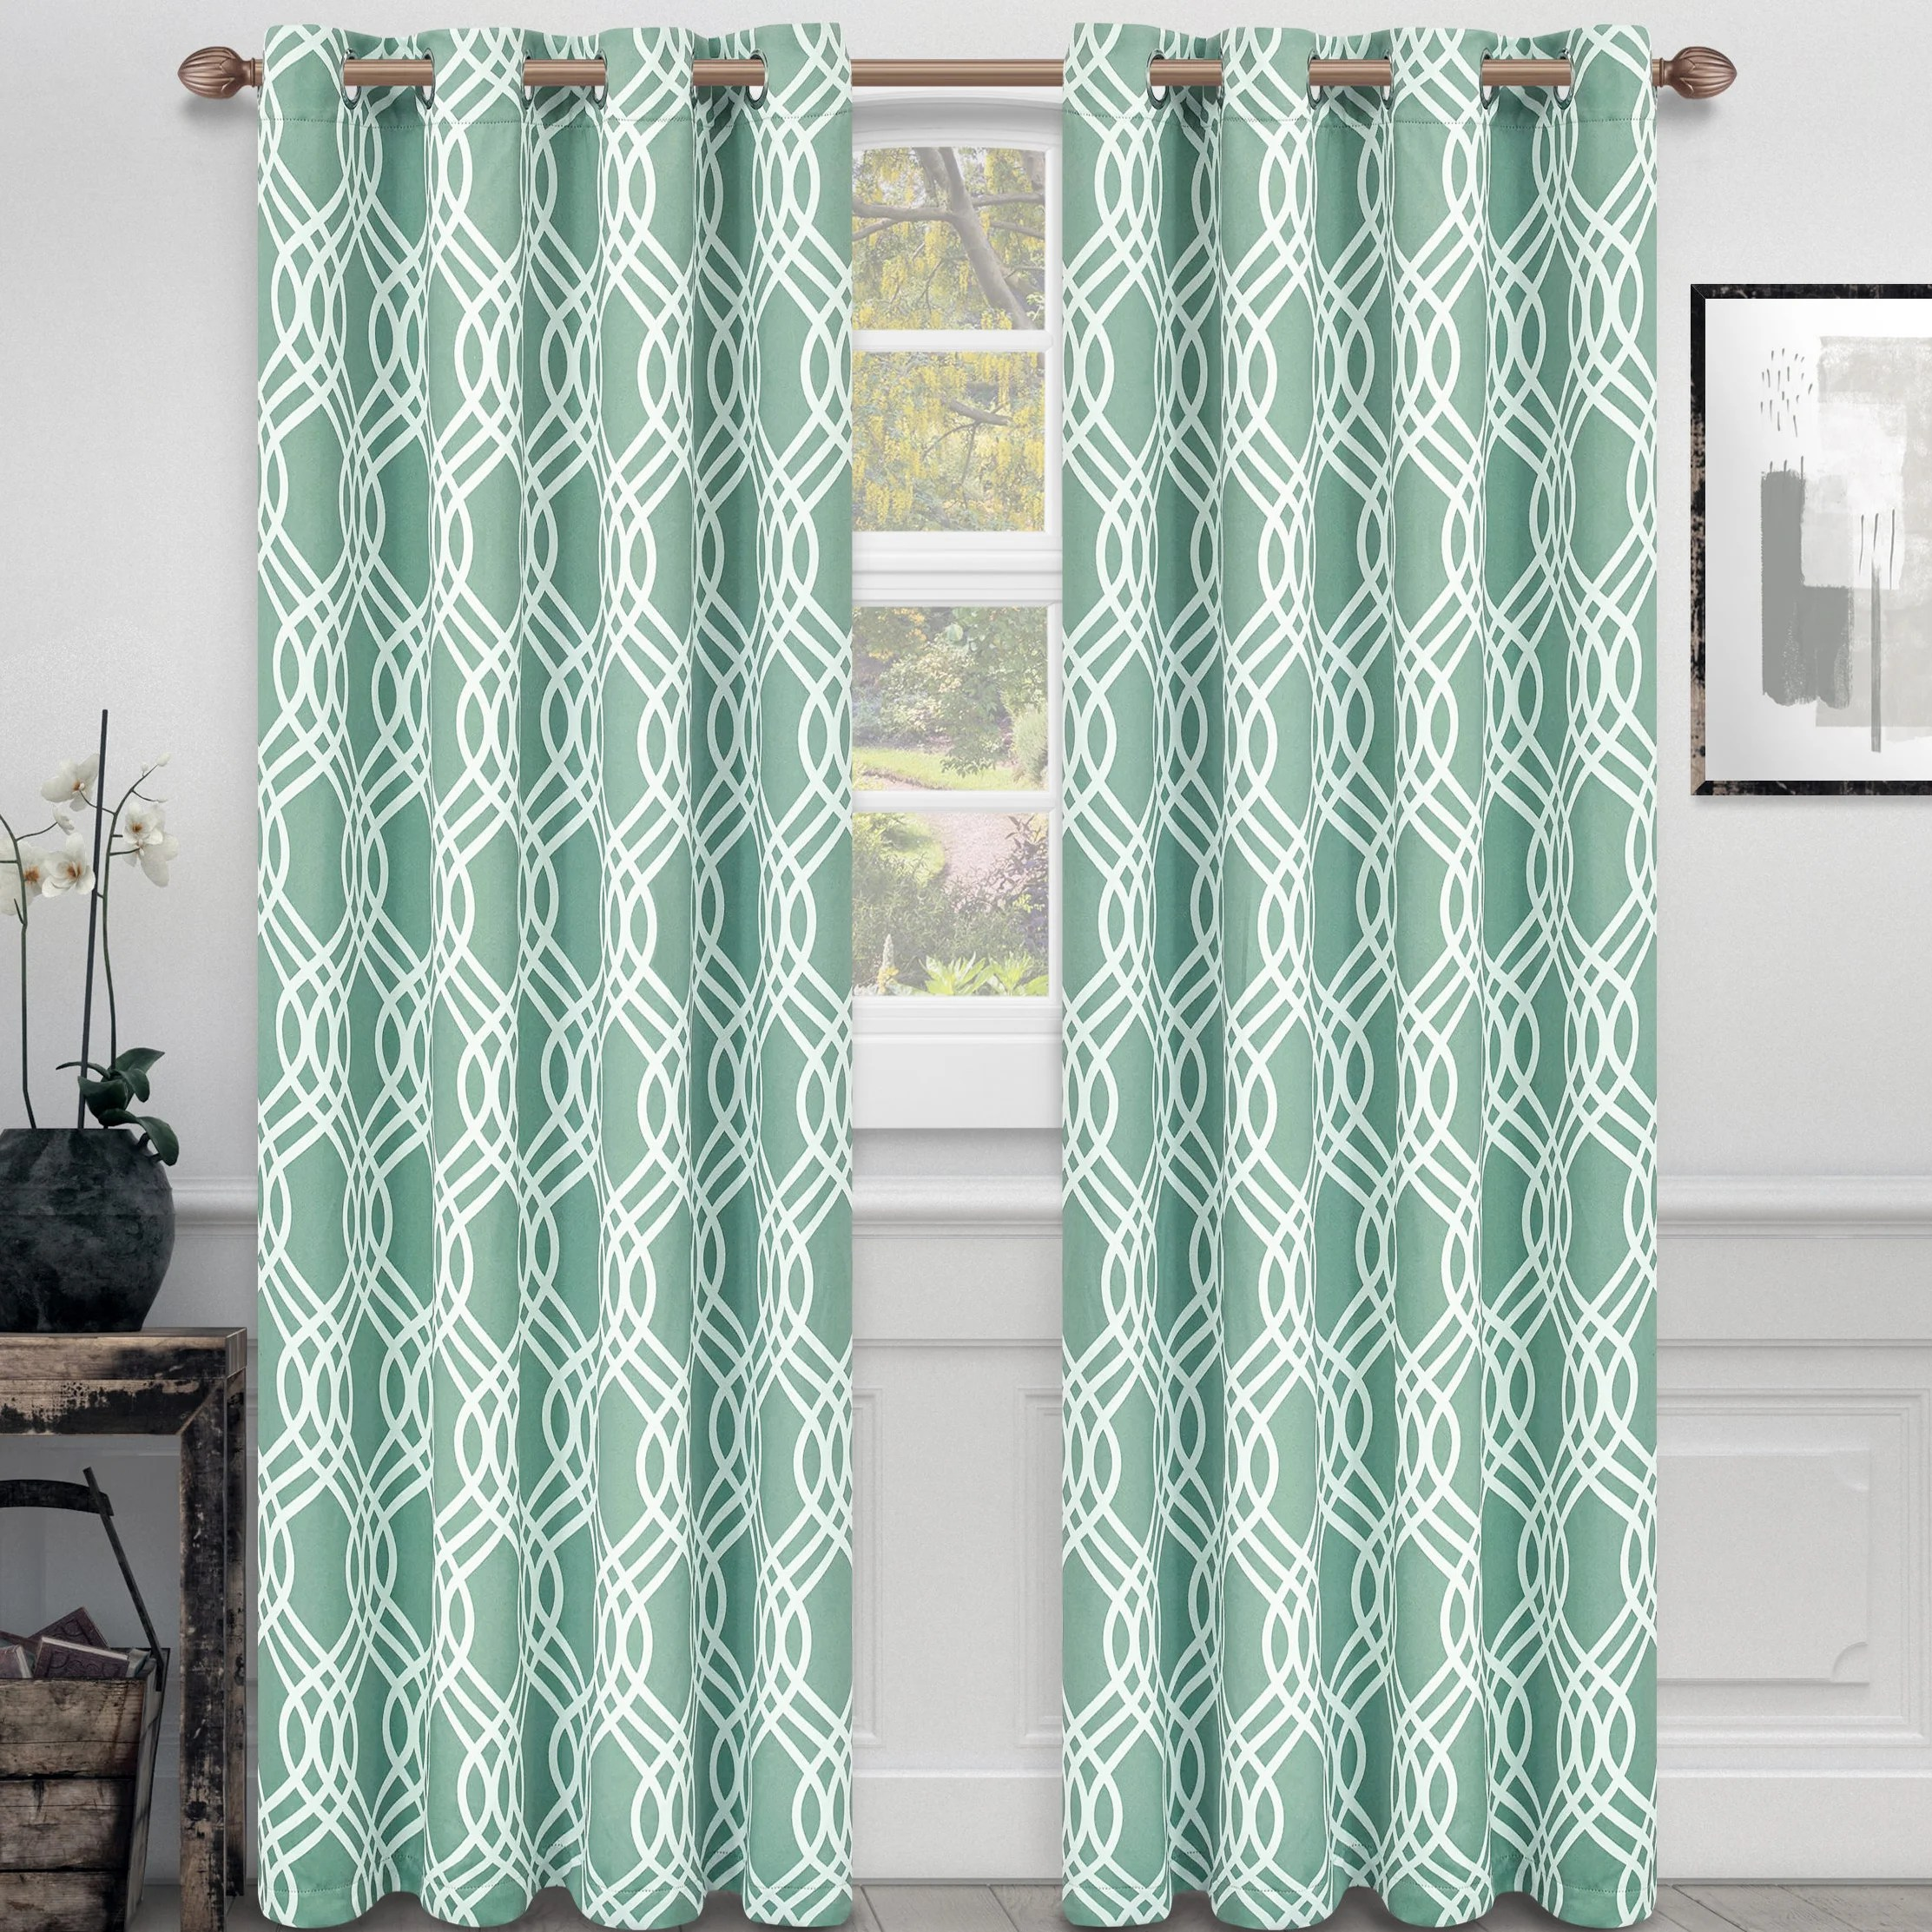 Teal Blackout Curtains Kinlaw Geometric Blackout Thermal Grommet Curtain Panels